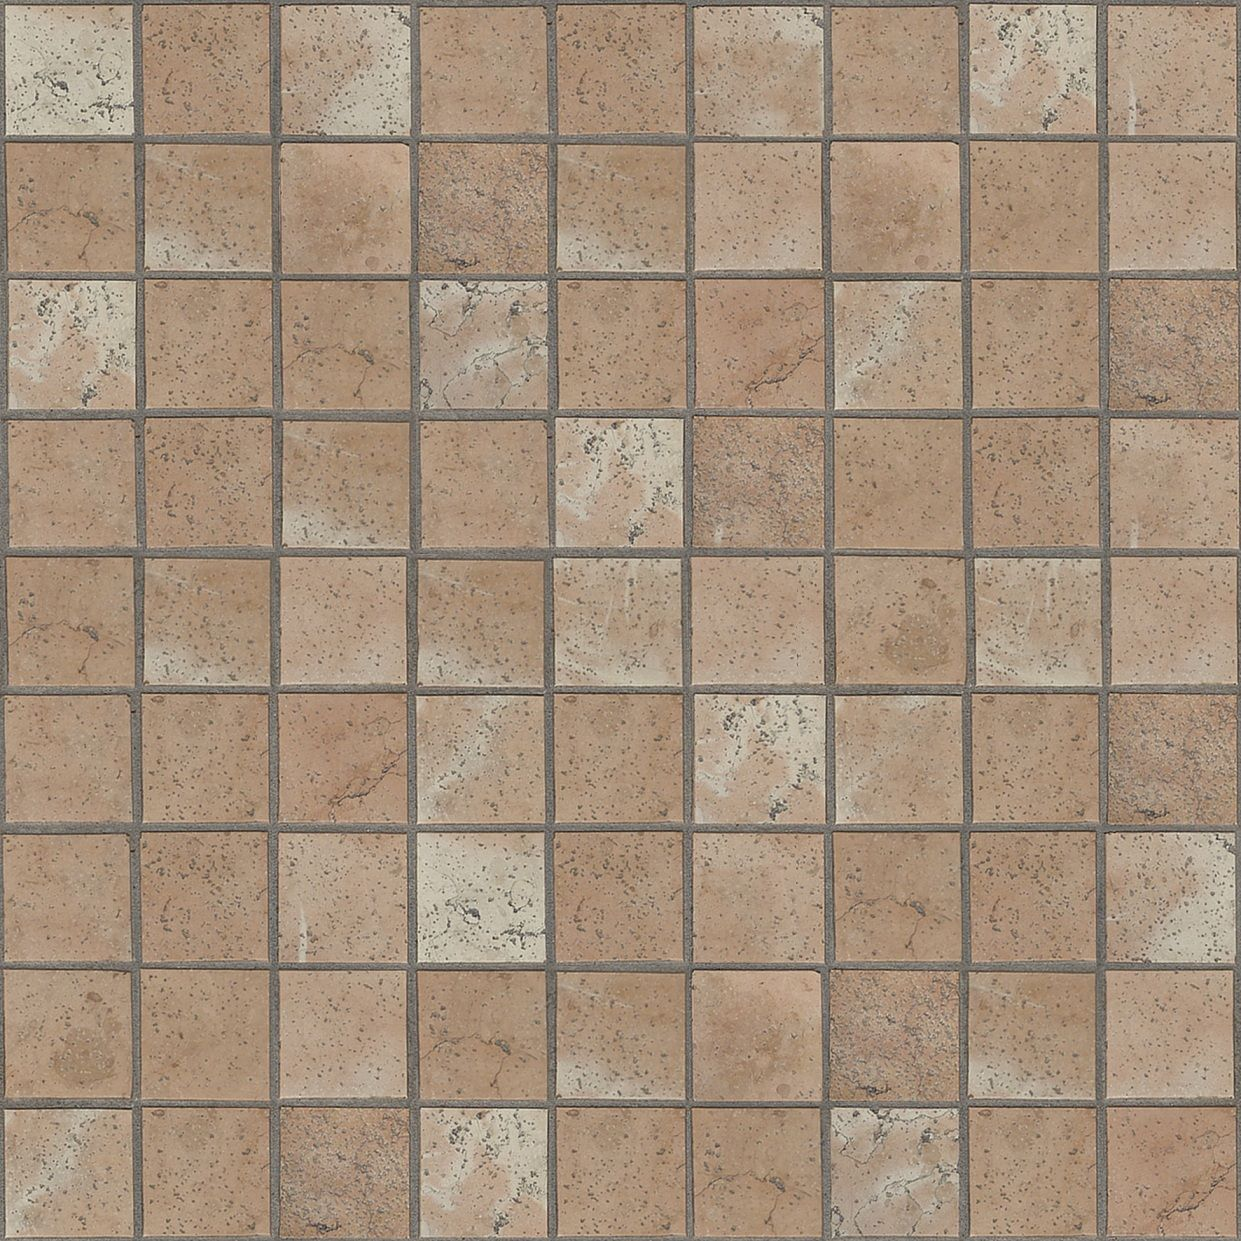 Textured Ceramic Floor Tile